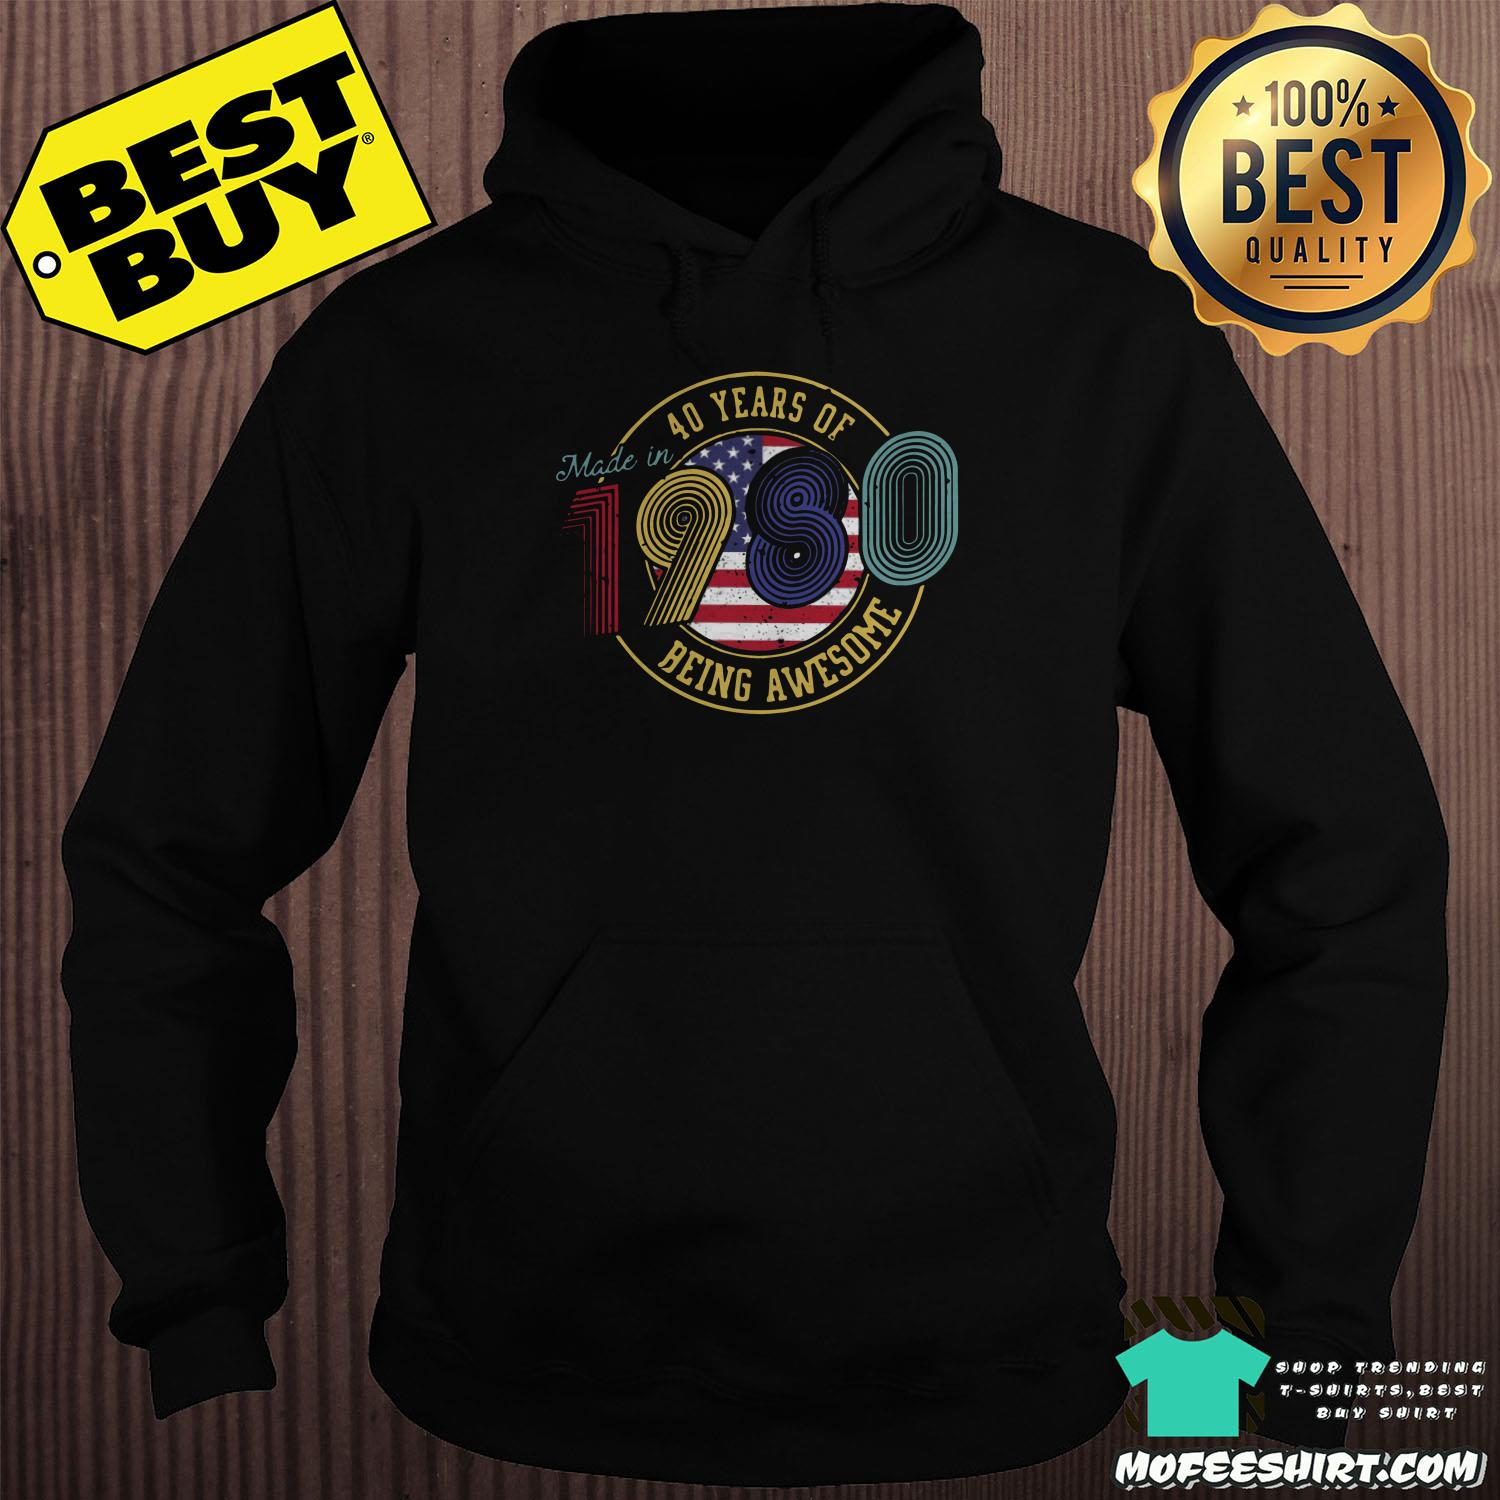 made in 40 years of 1980 being awesome american vintage hoodie - Made in 40 Years Of 1980 Being Awesome American Vintage Shirt